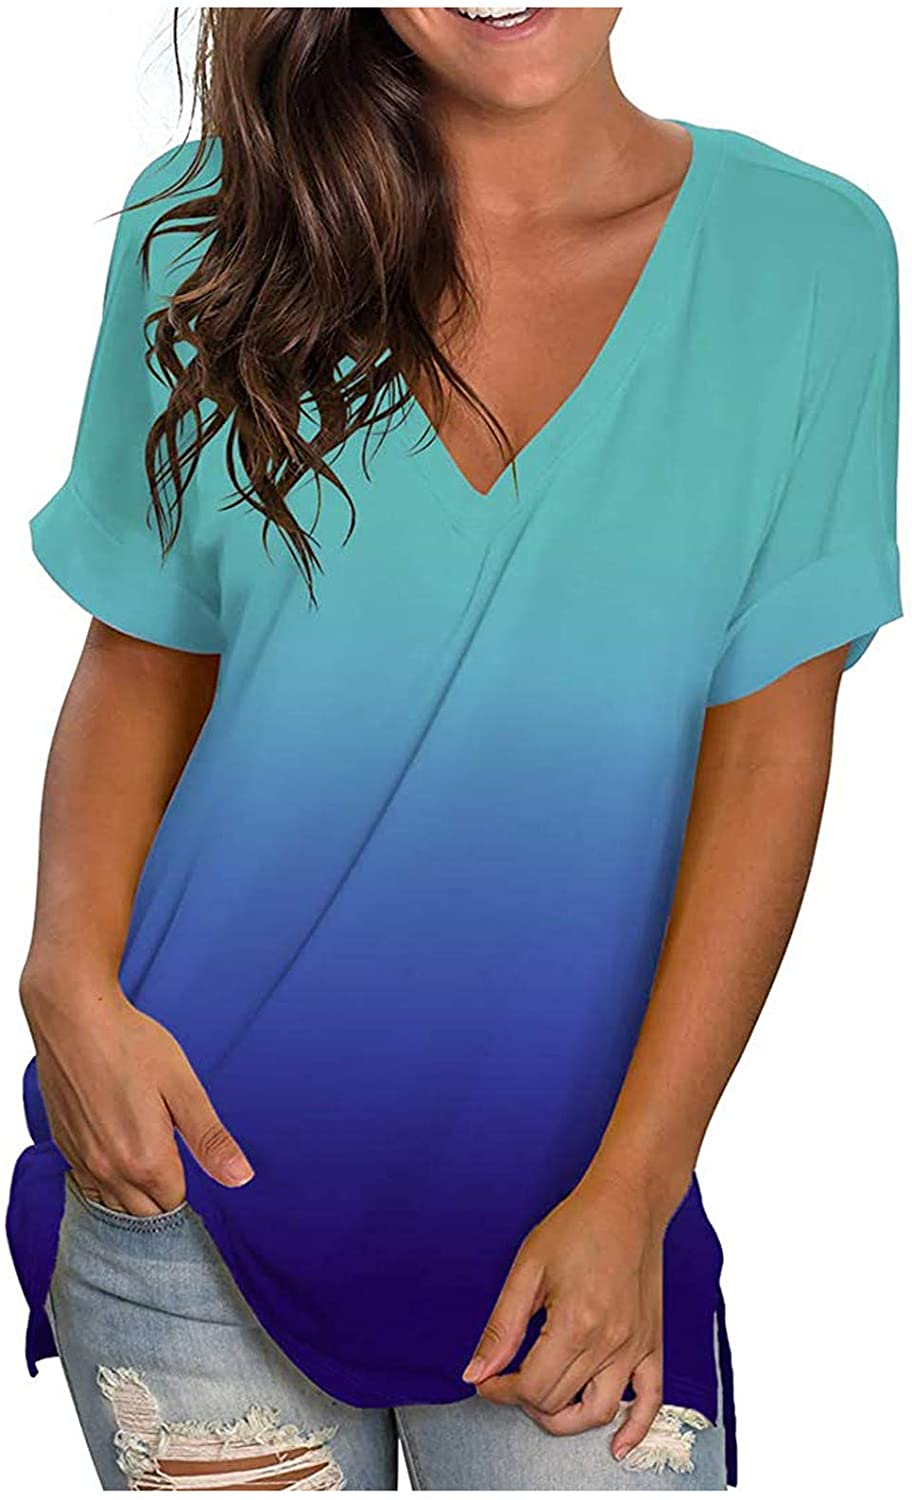 Womens Summer Tops, Women 2021 Gradient Floral Tops V-Neck Tees with Sleeves T-Shirt Printed Side Split Tunic Tops